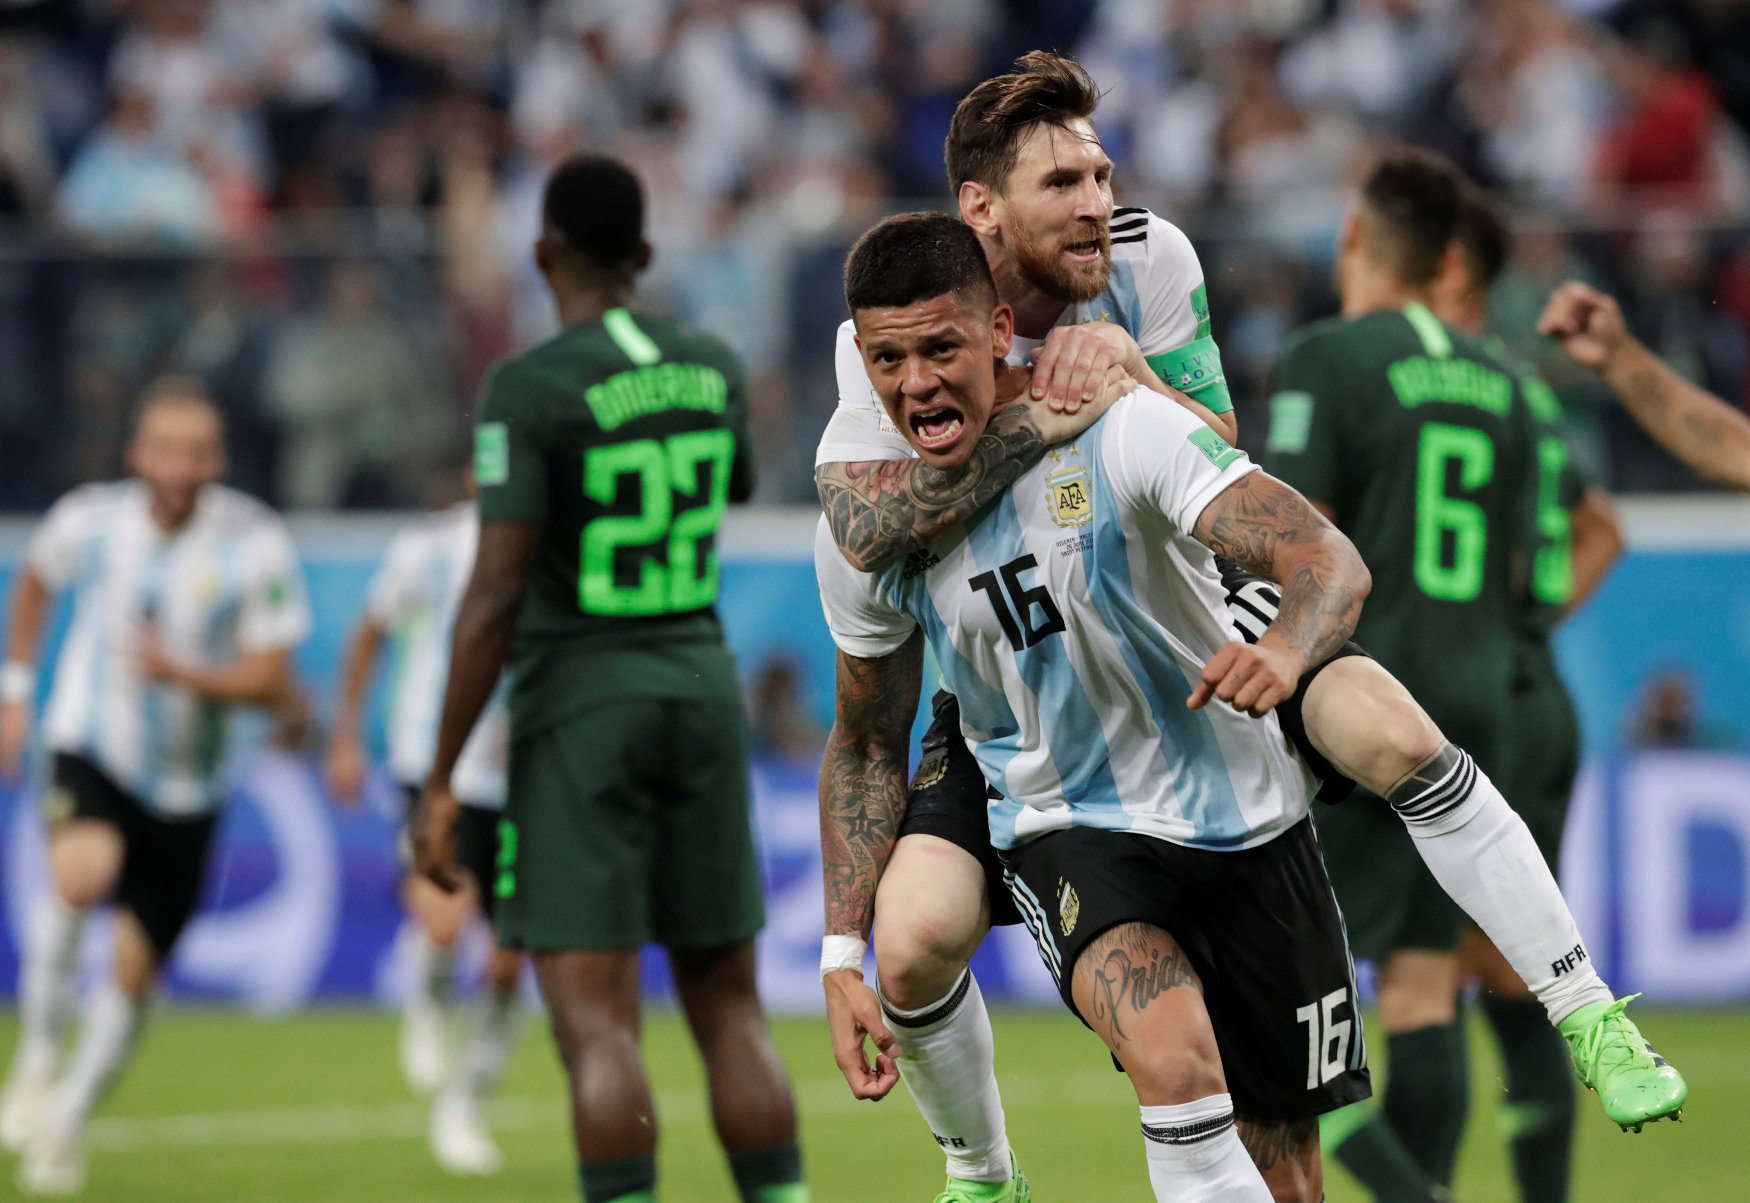 2018-06-26T194756Z_1152562281_RC153827CEC0_RTRMADP_3_SOCCER-WORLDCUP-NGA-ARG